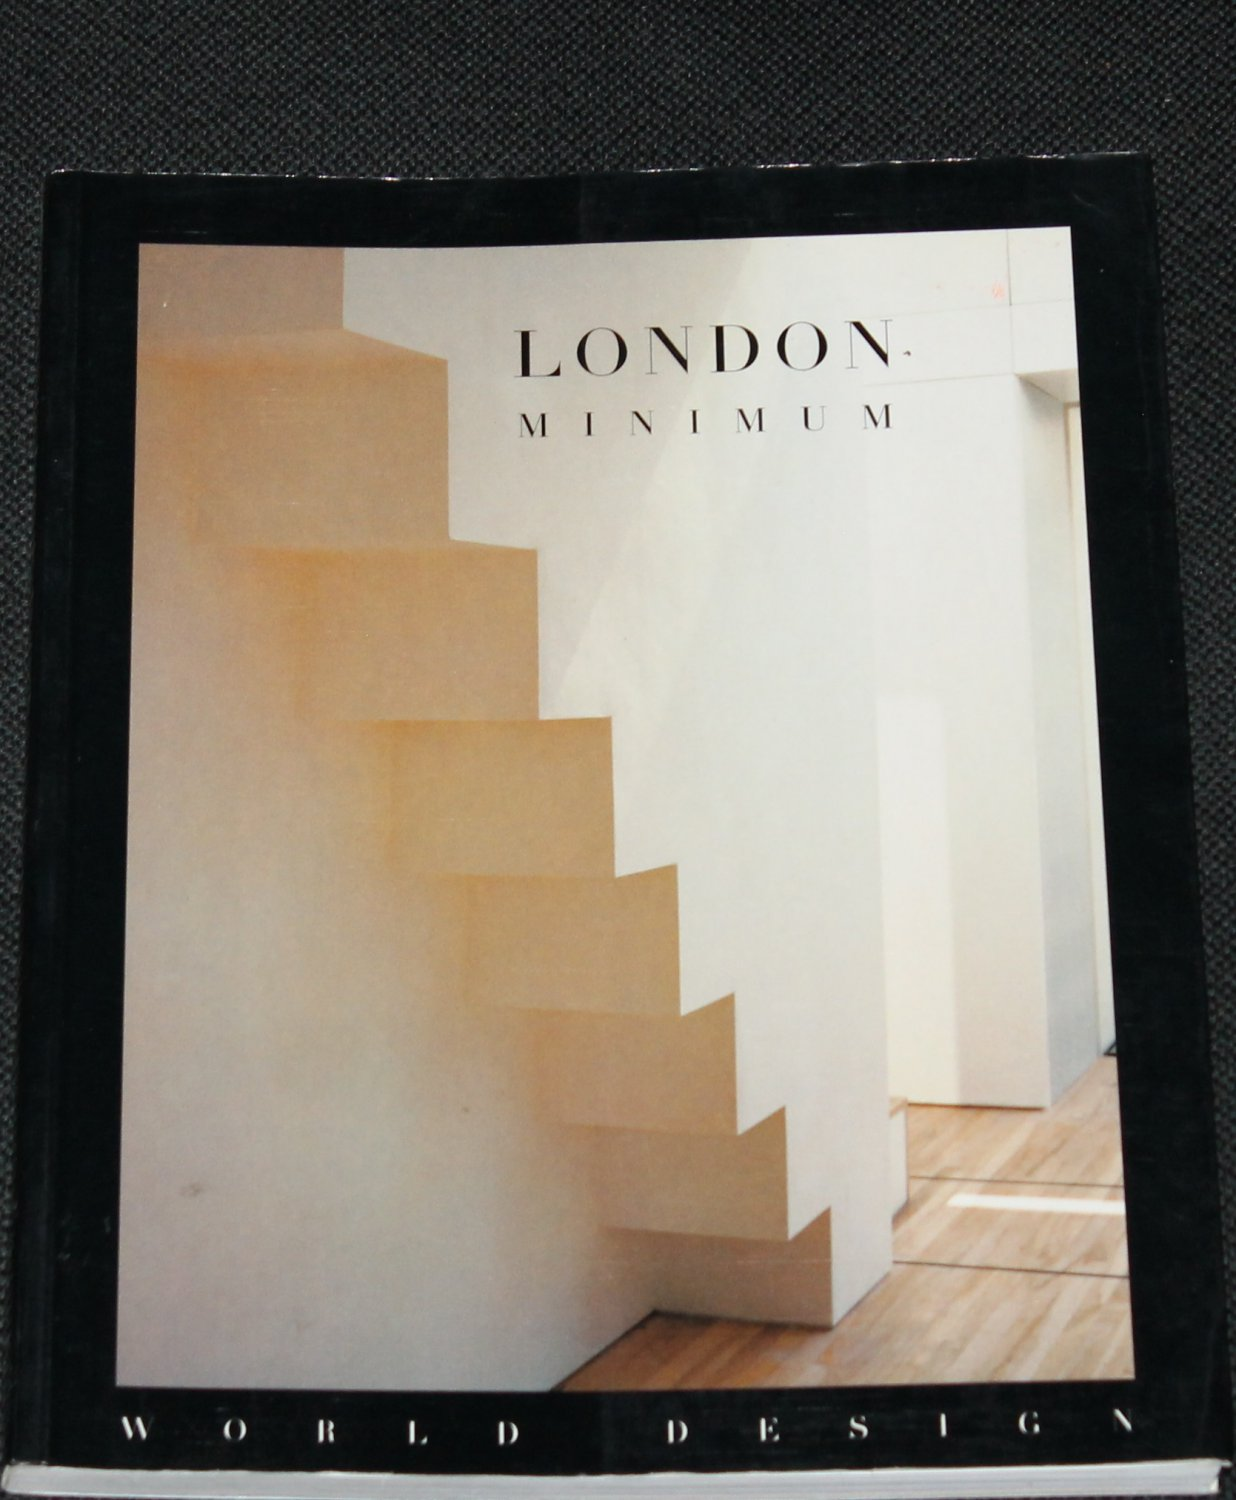 London Minimal interior home design - house decor designer book by World Design